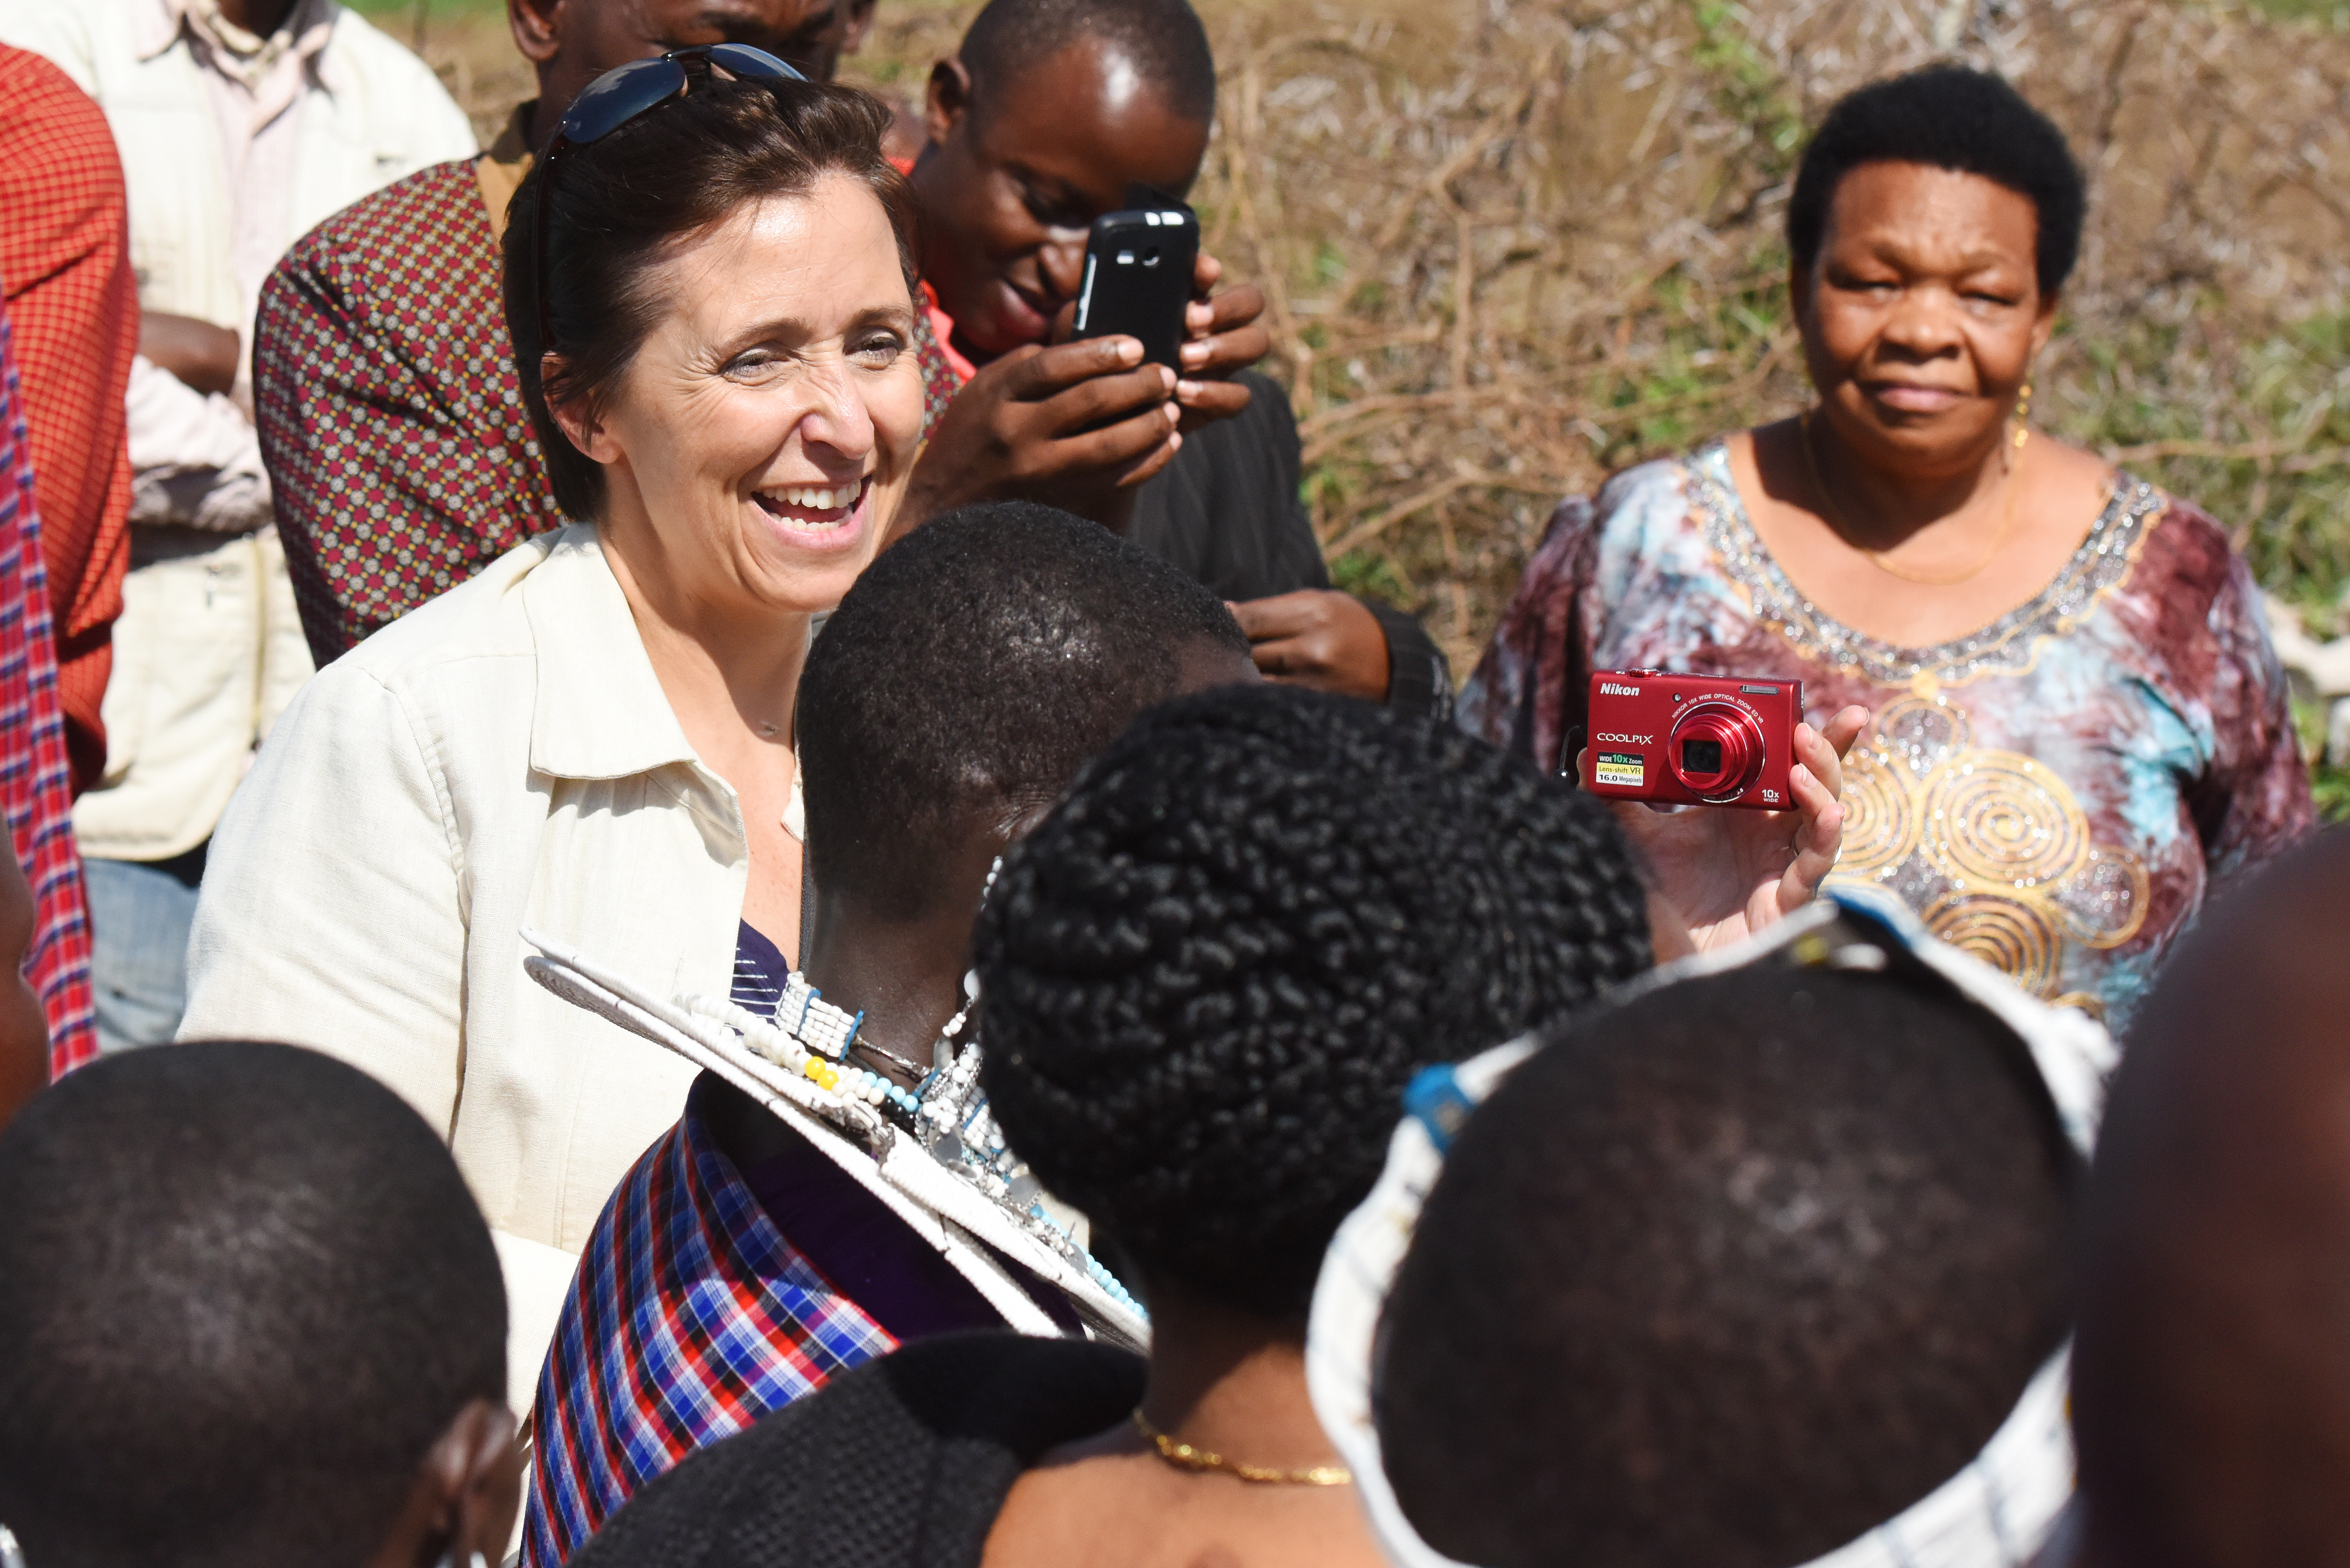 U.S. Navy Cmdr. Kimberly Walz, Combined Joint Task Force-Horn of Africa Theater Security Cooperation deputy director, interacts with Maasai Tribe members during the Gender Mainstreaming Seminar cultural day May 21, 2015 in Tanzania.  The tribe welcomed their visitors with singing and dancing.  (U.S. Air Force photo by Staff Sgt. Maria Bowman)